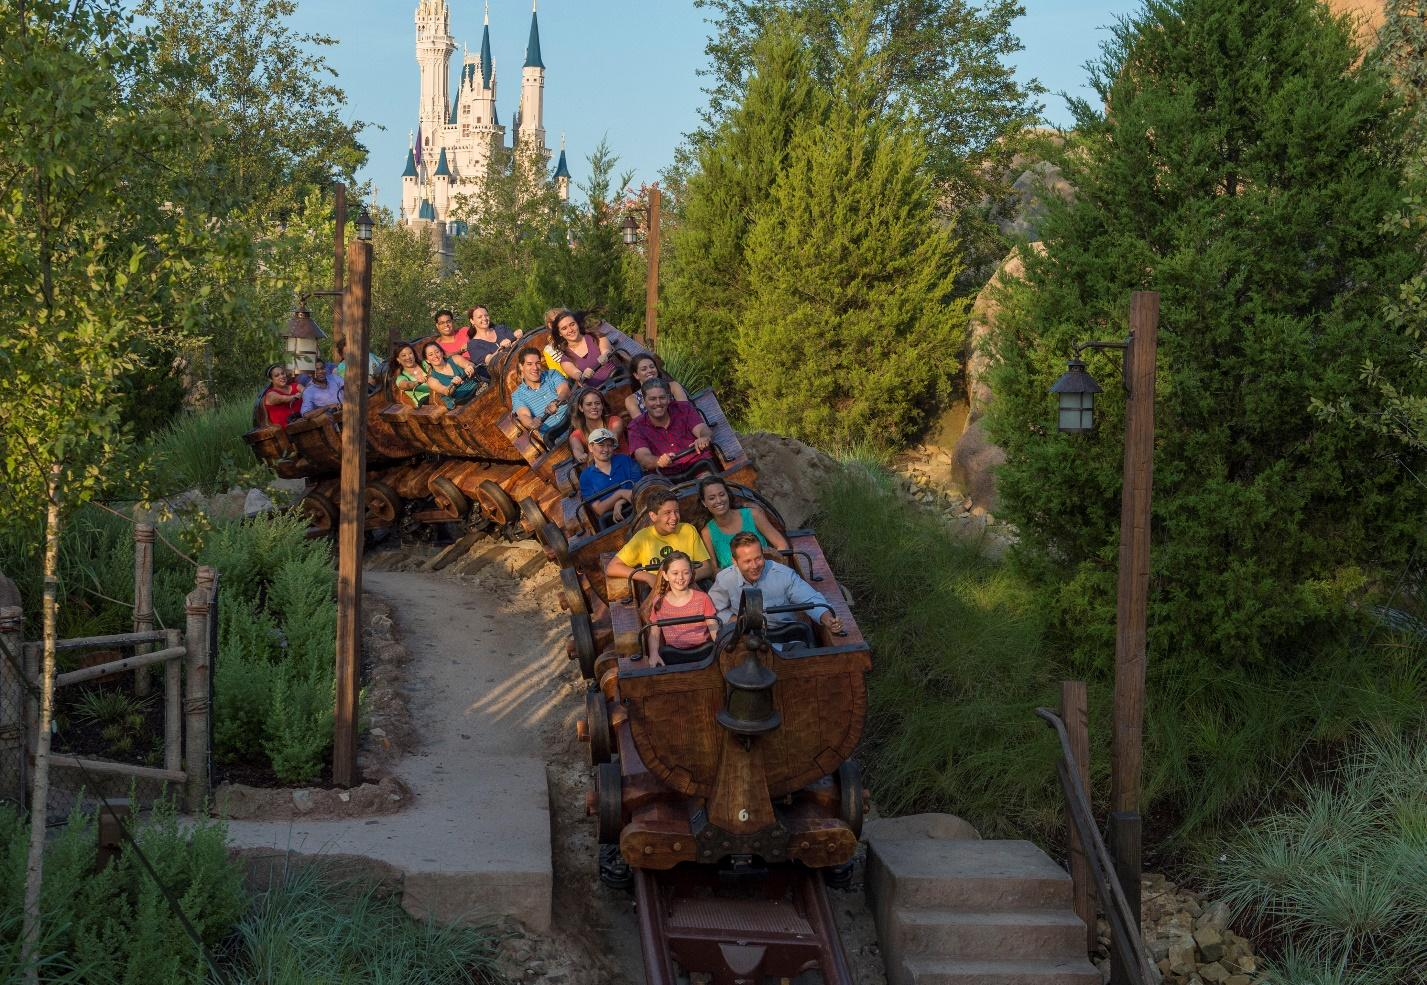 Disney attraction, Seven Dwarfs Mine Train ride.